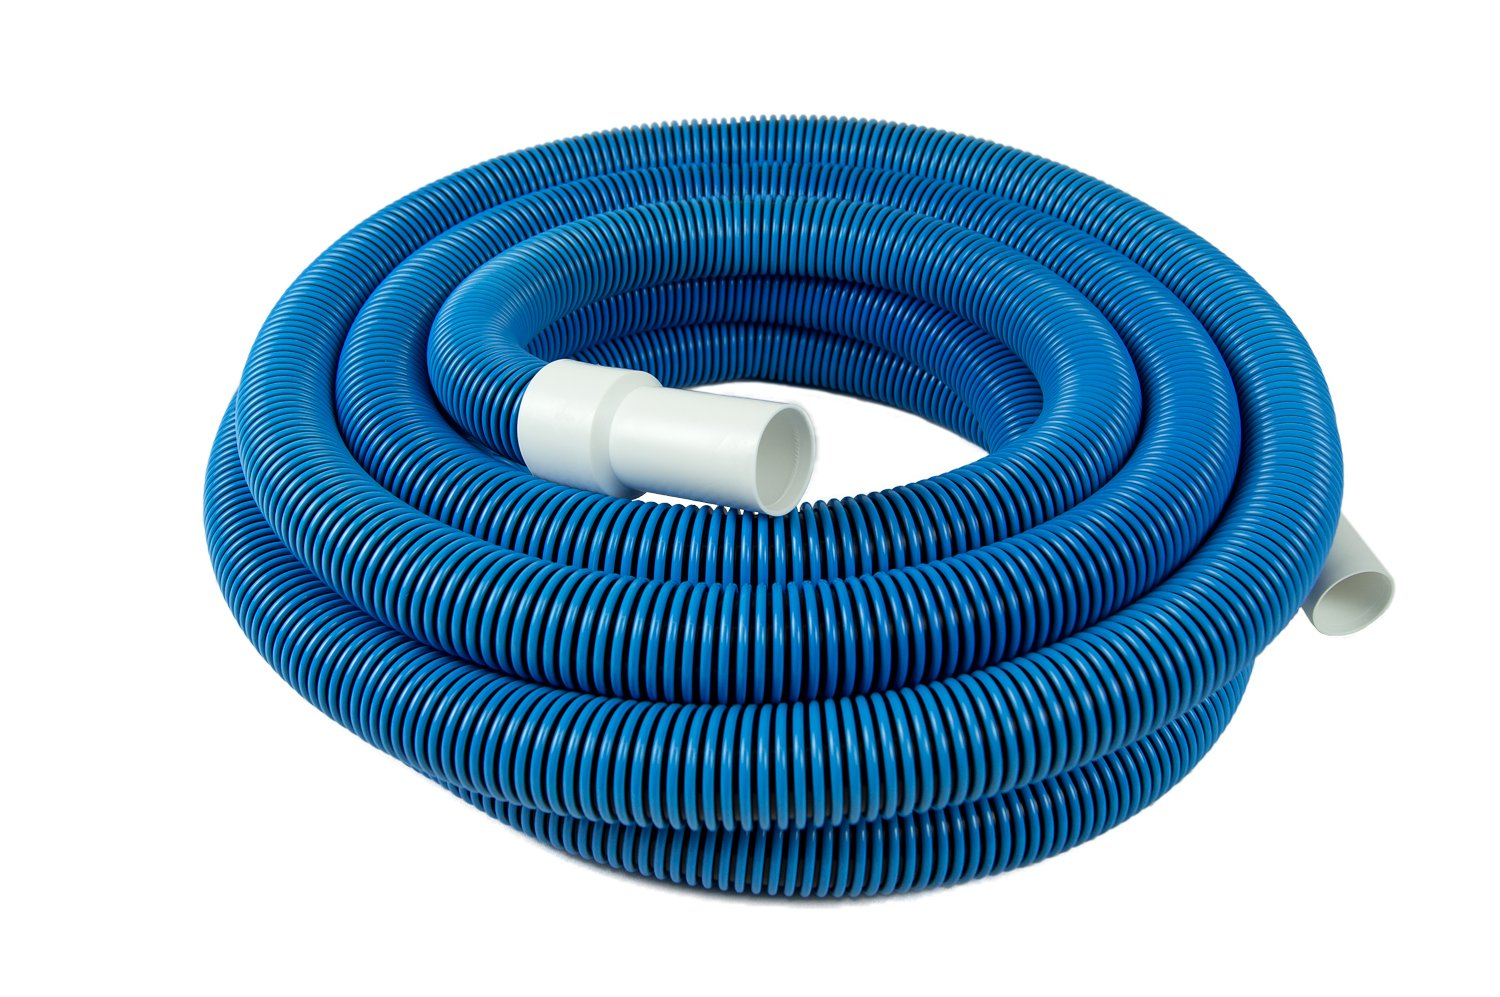 Vacuum Hose In Ground Pool Cleaning Spa Cleaner Accessories Suction Pools New Ebay